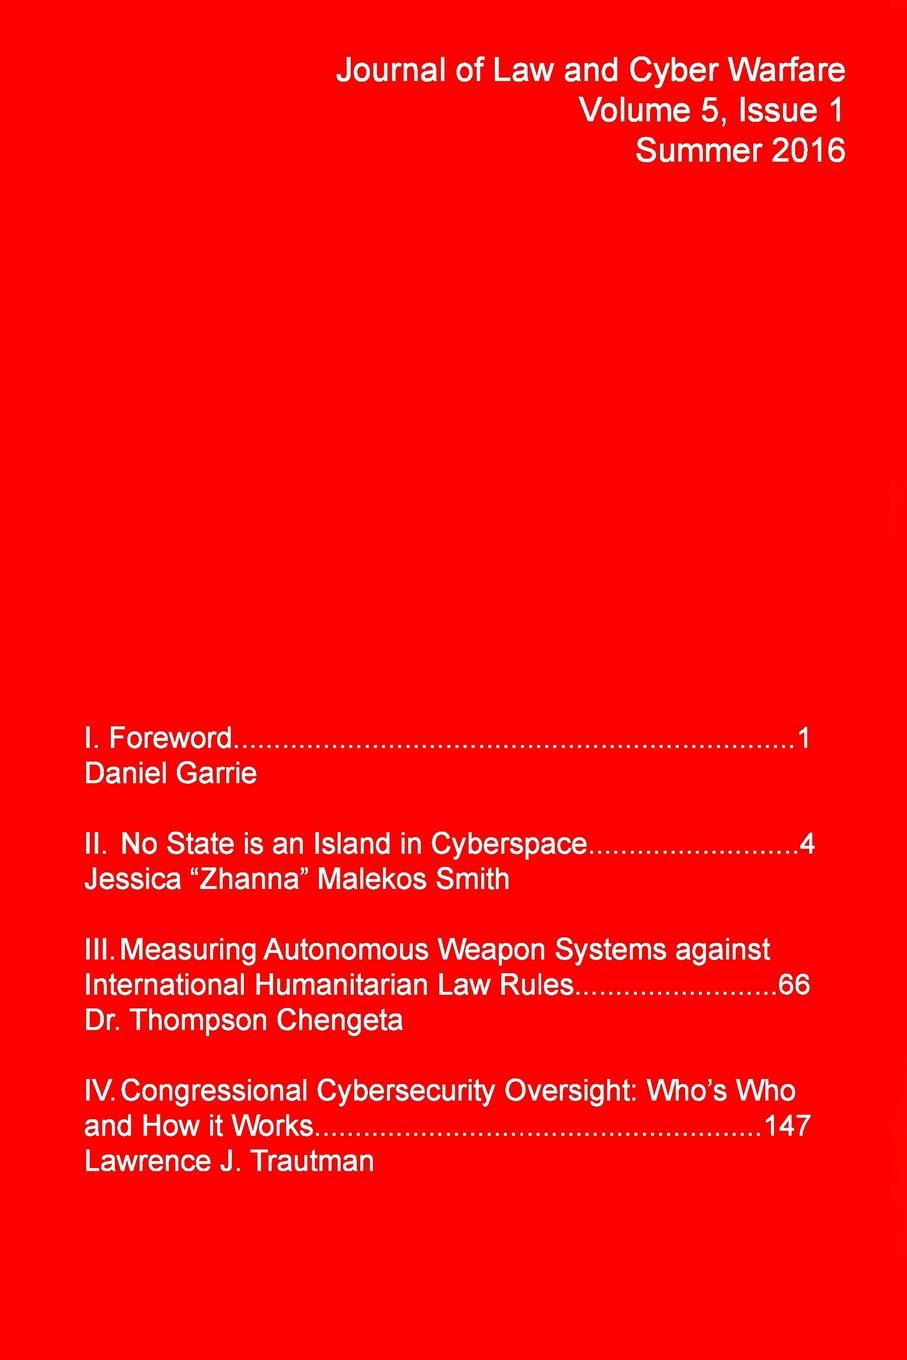 Journal of Law Cyber Warfare JLCW Vol. 5, No. 1 passive activity rules – law